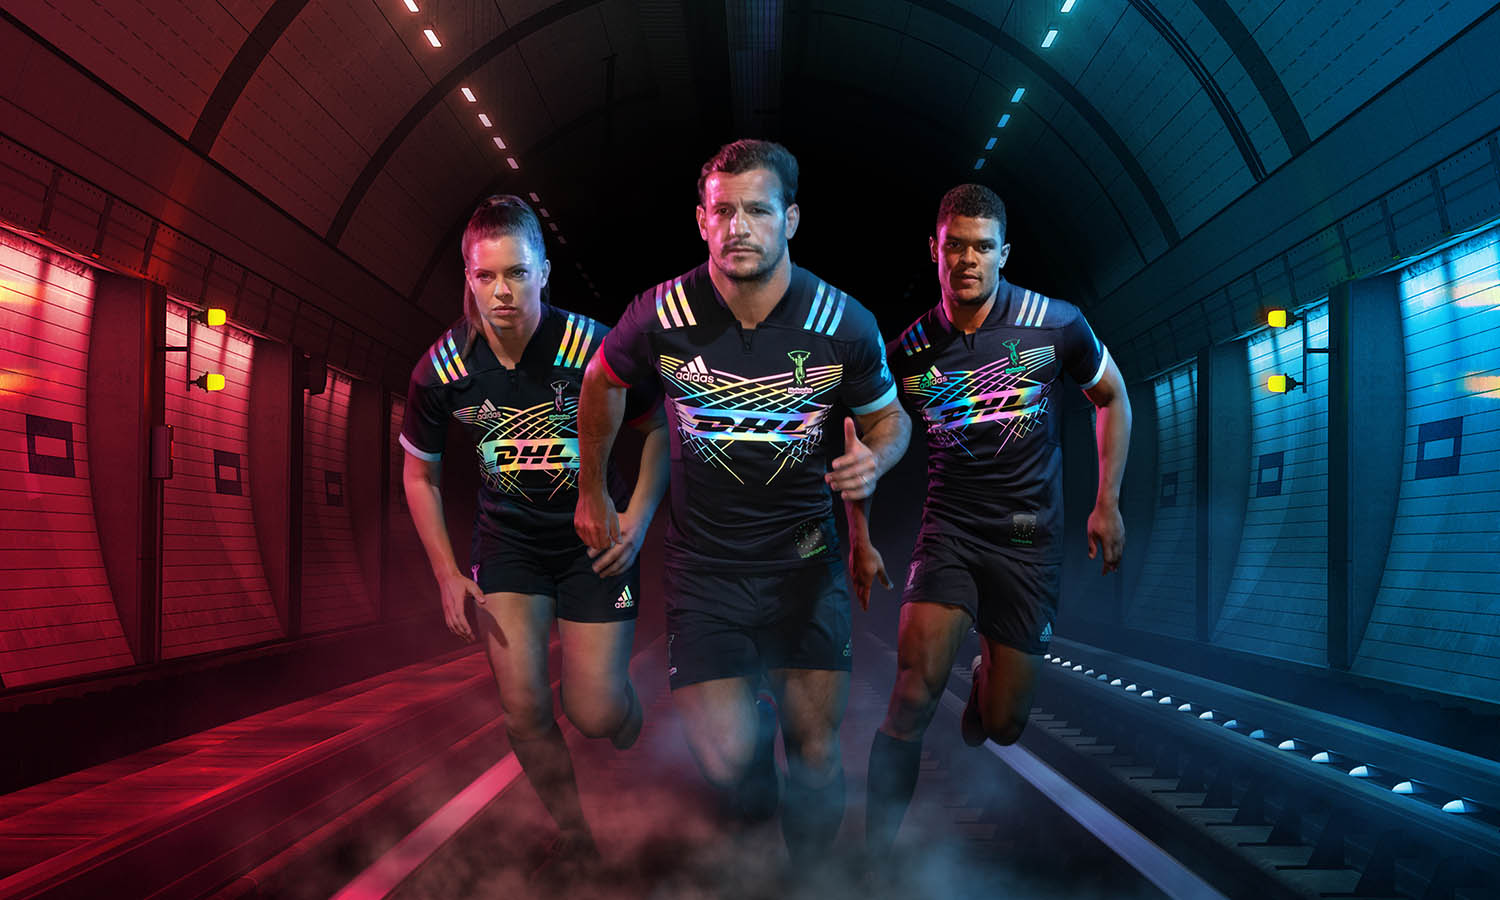 Harlequin rugby players wearing the 18/19 charity shirt in a tunnel